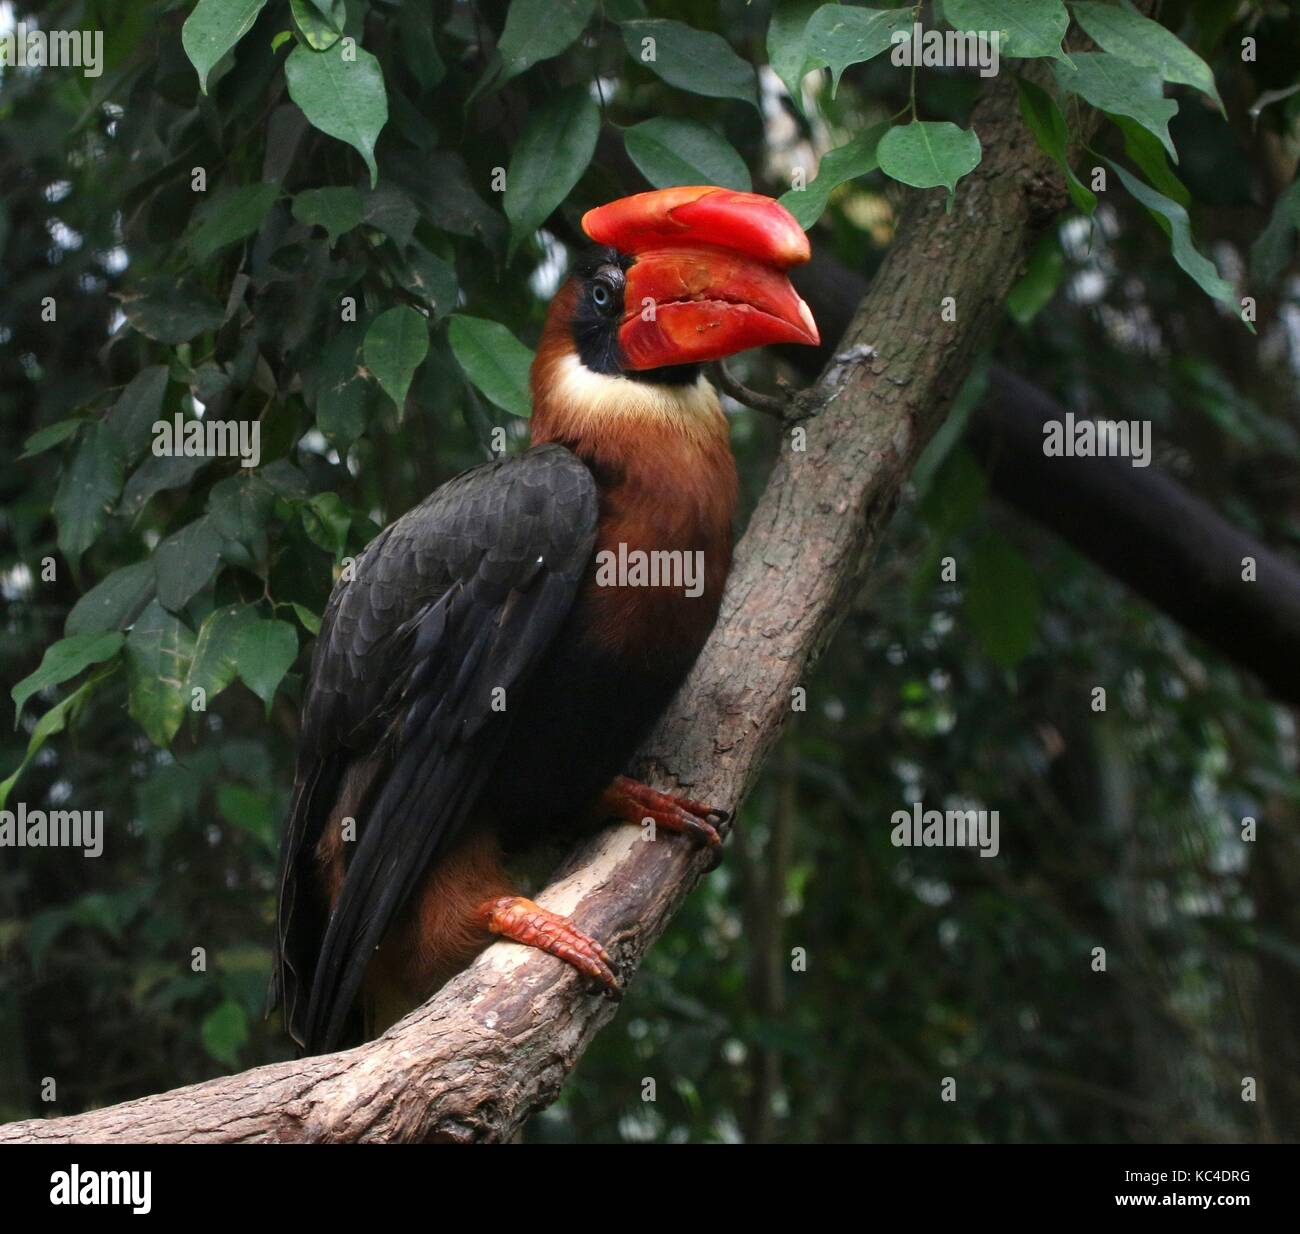 Female  Asian Rufous hornbill (Buceros hydrocorax perched in a tree. Also known as Philippine hornbill - Stock Image